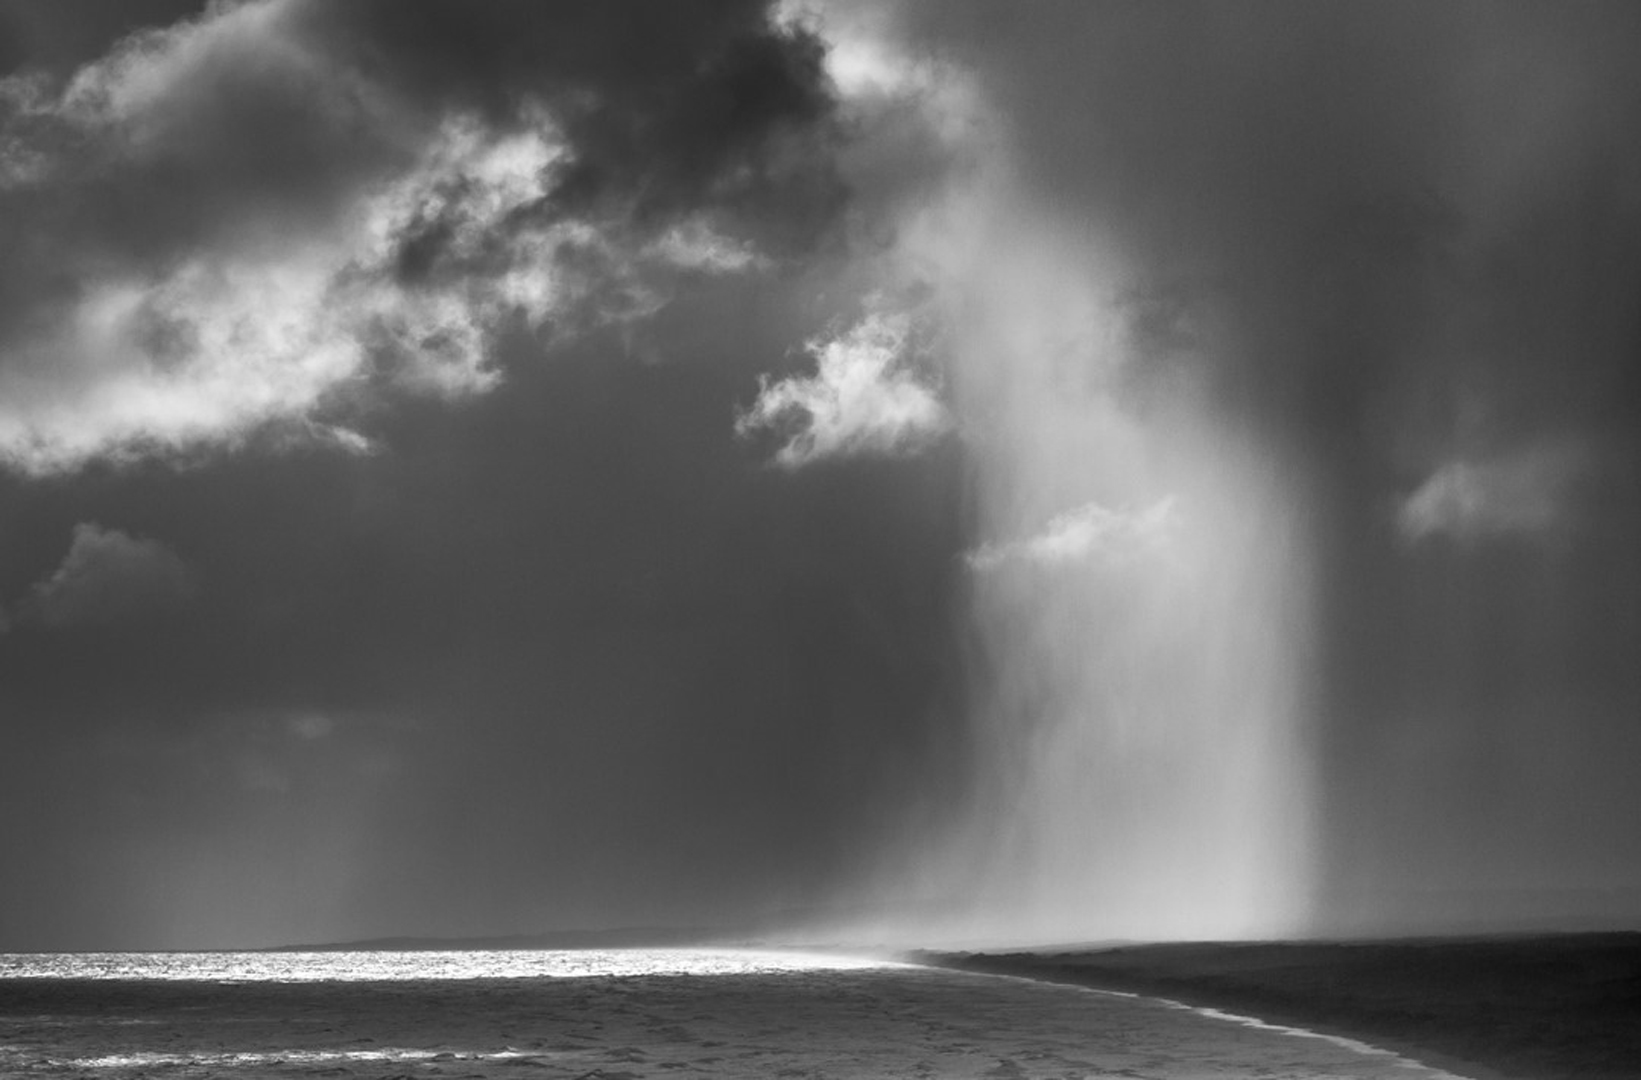 Downpour on Muriwai